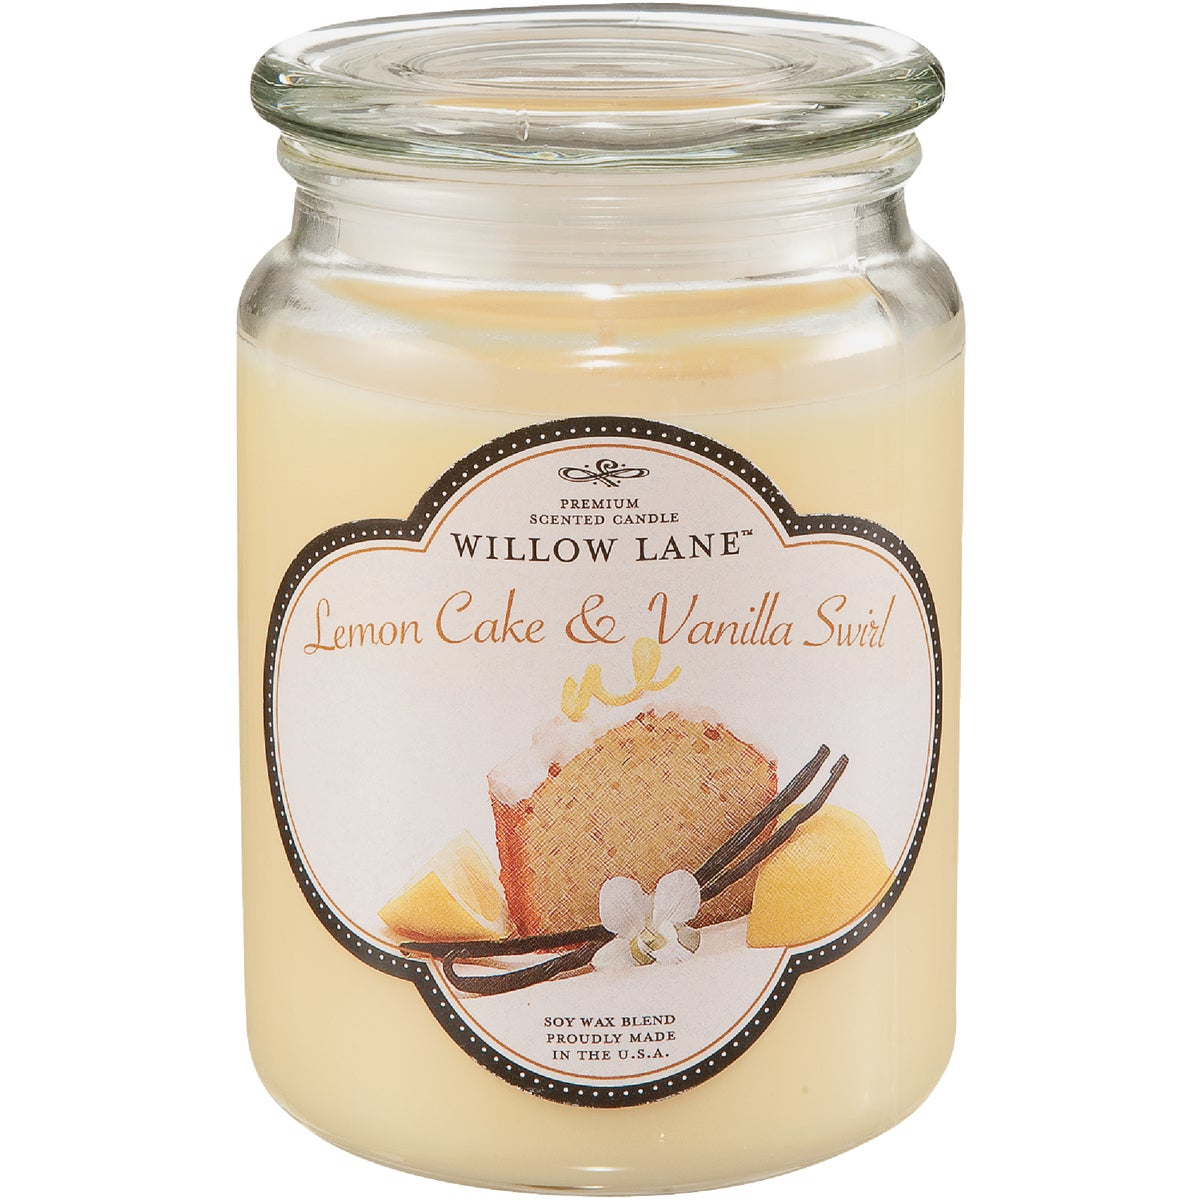 LEMONCAKE/VAN JAR CANDLE